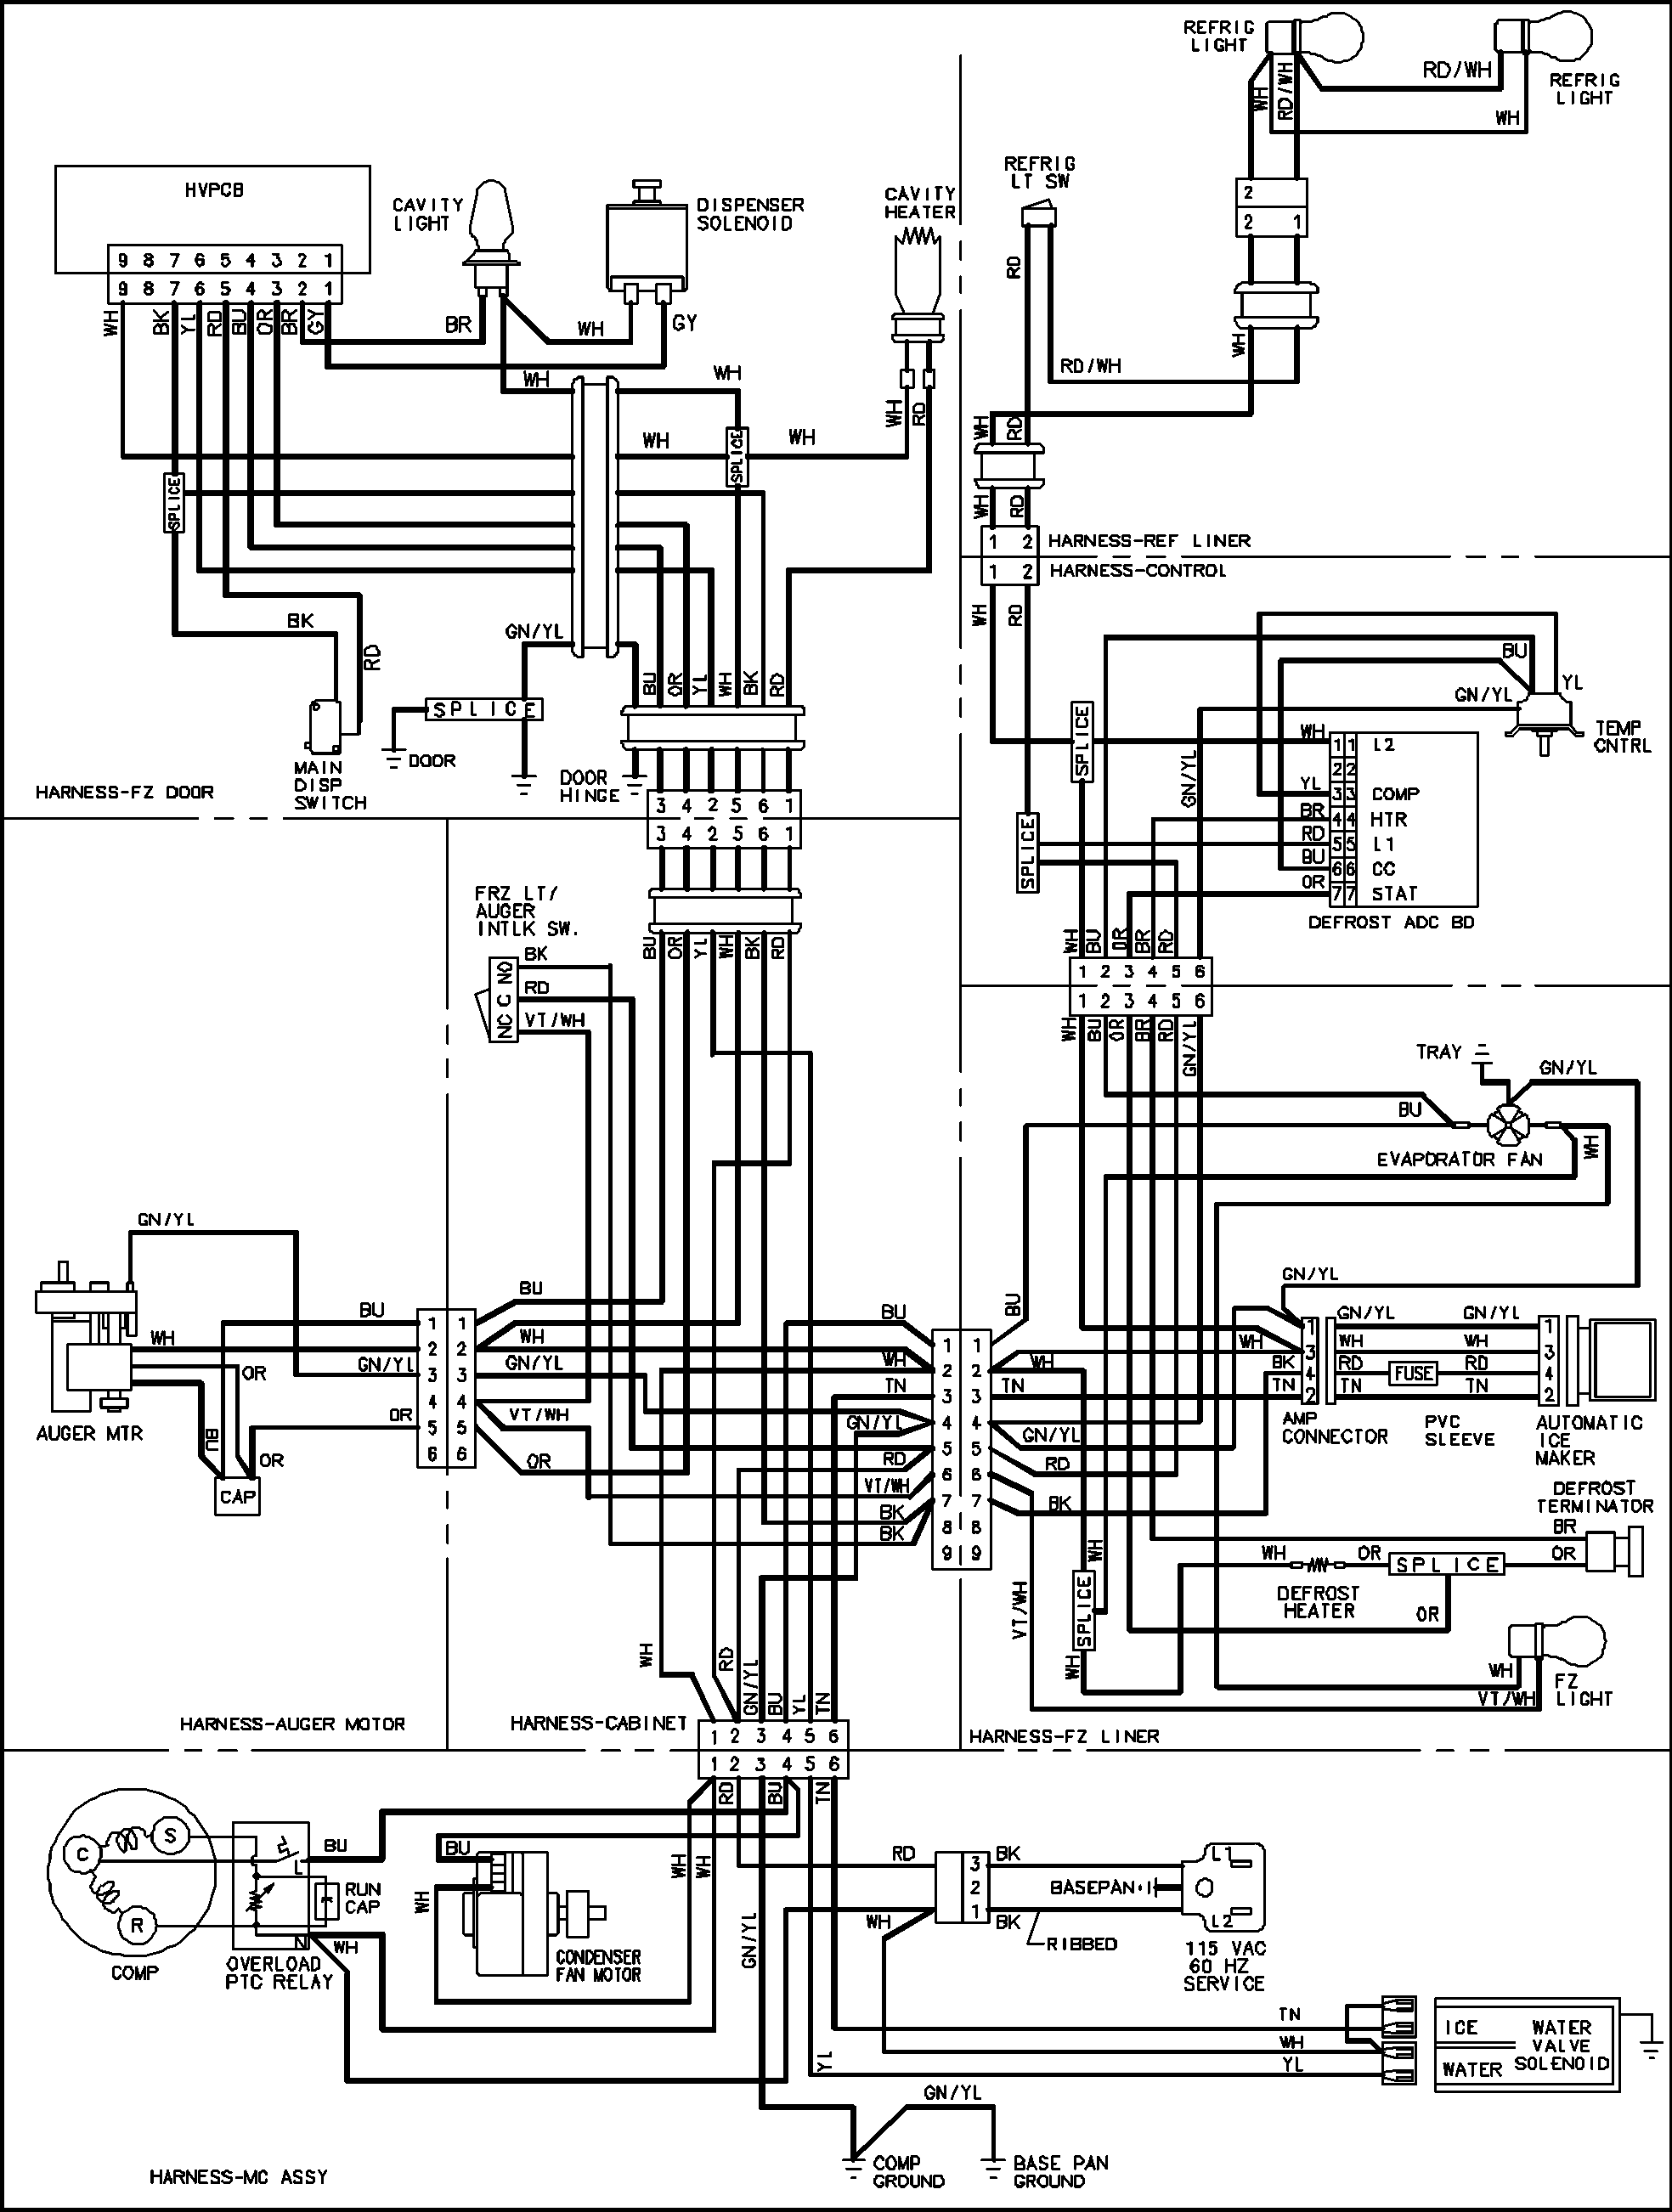 relay wiring diagrams for refrigeration